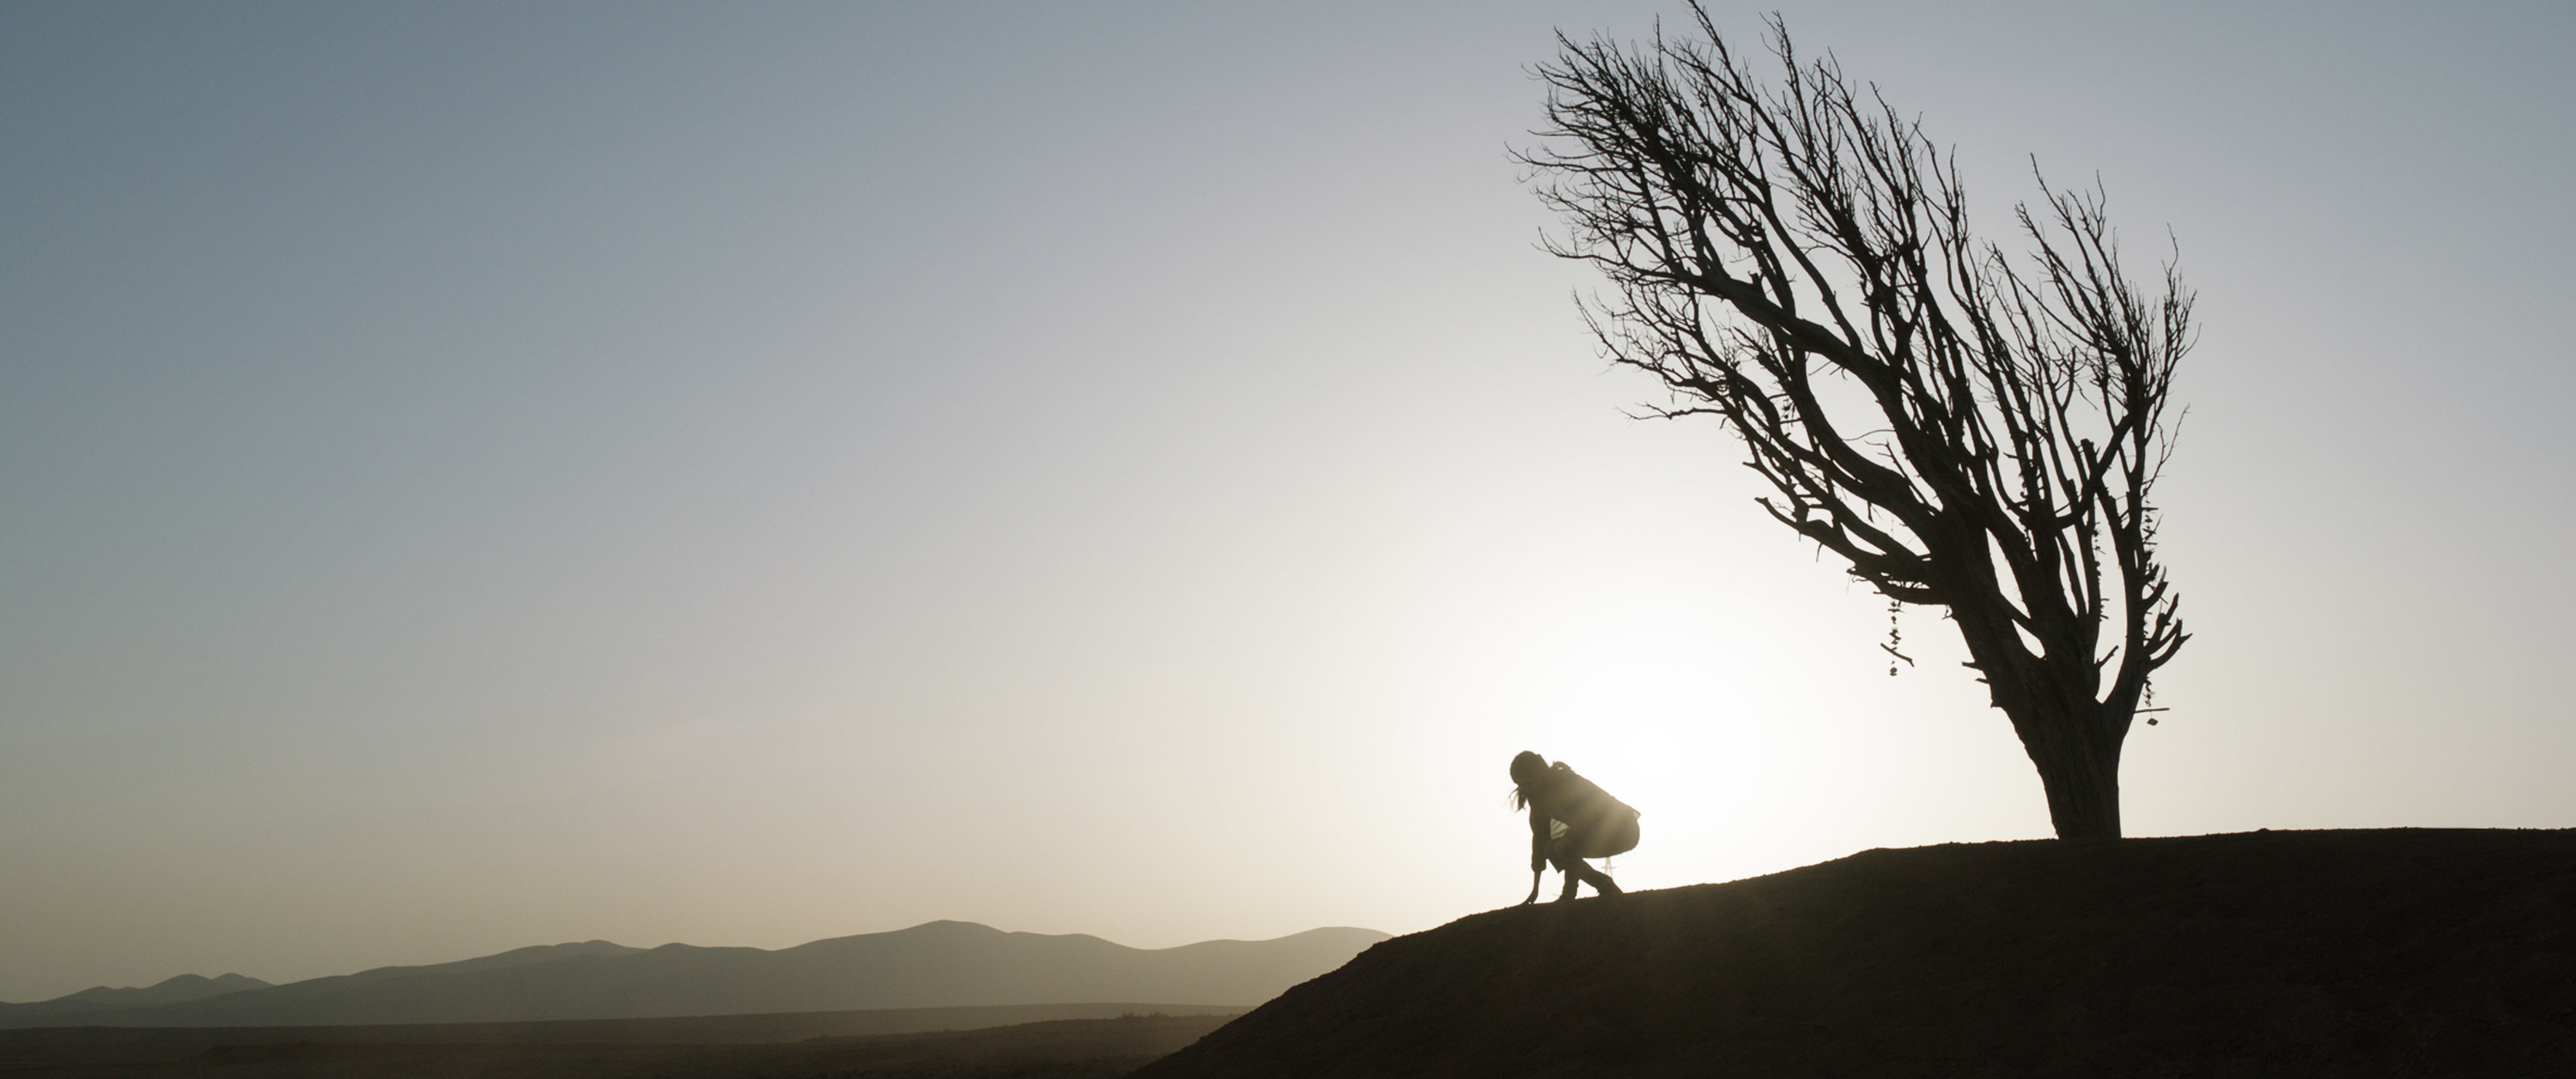 A person crouching in the distance next to a small tree